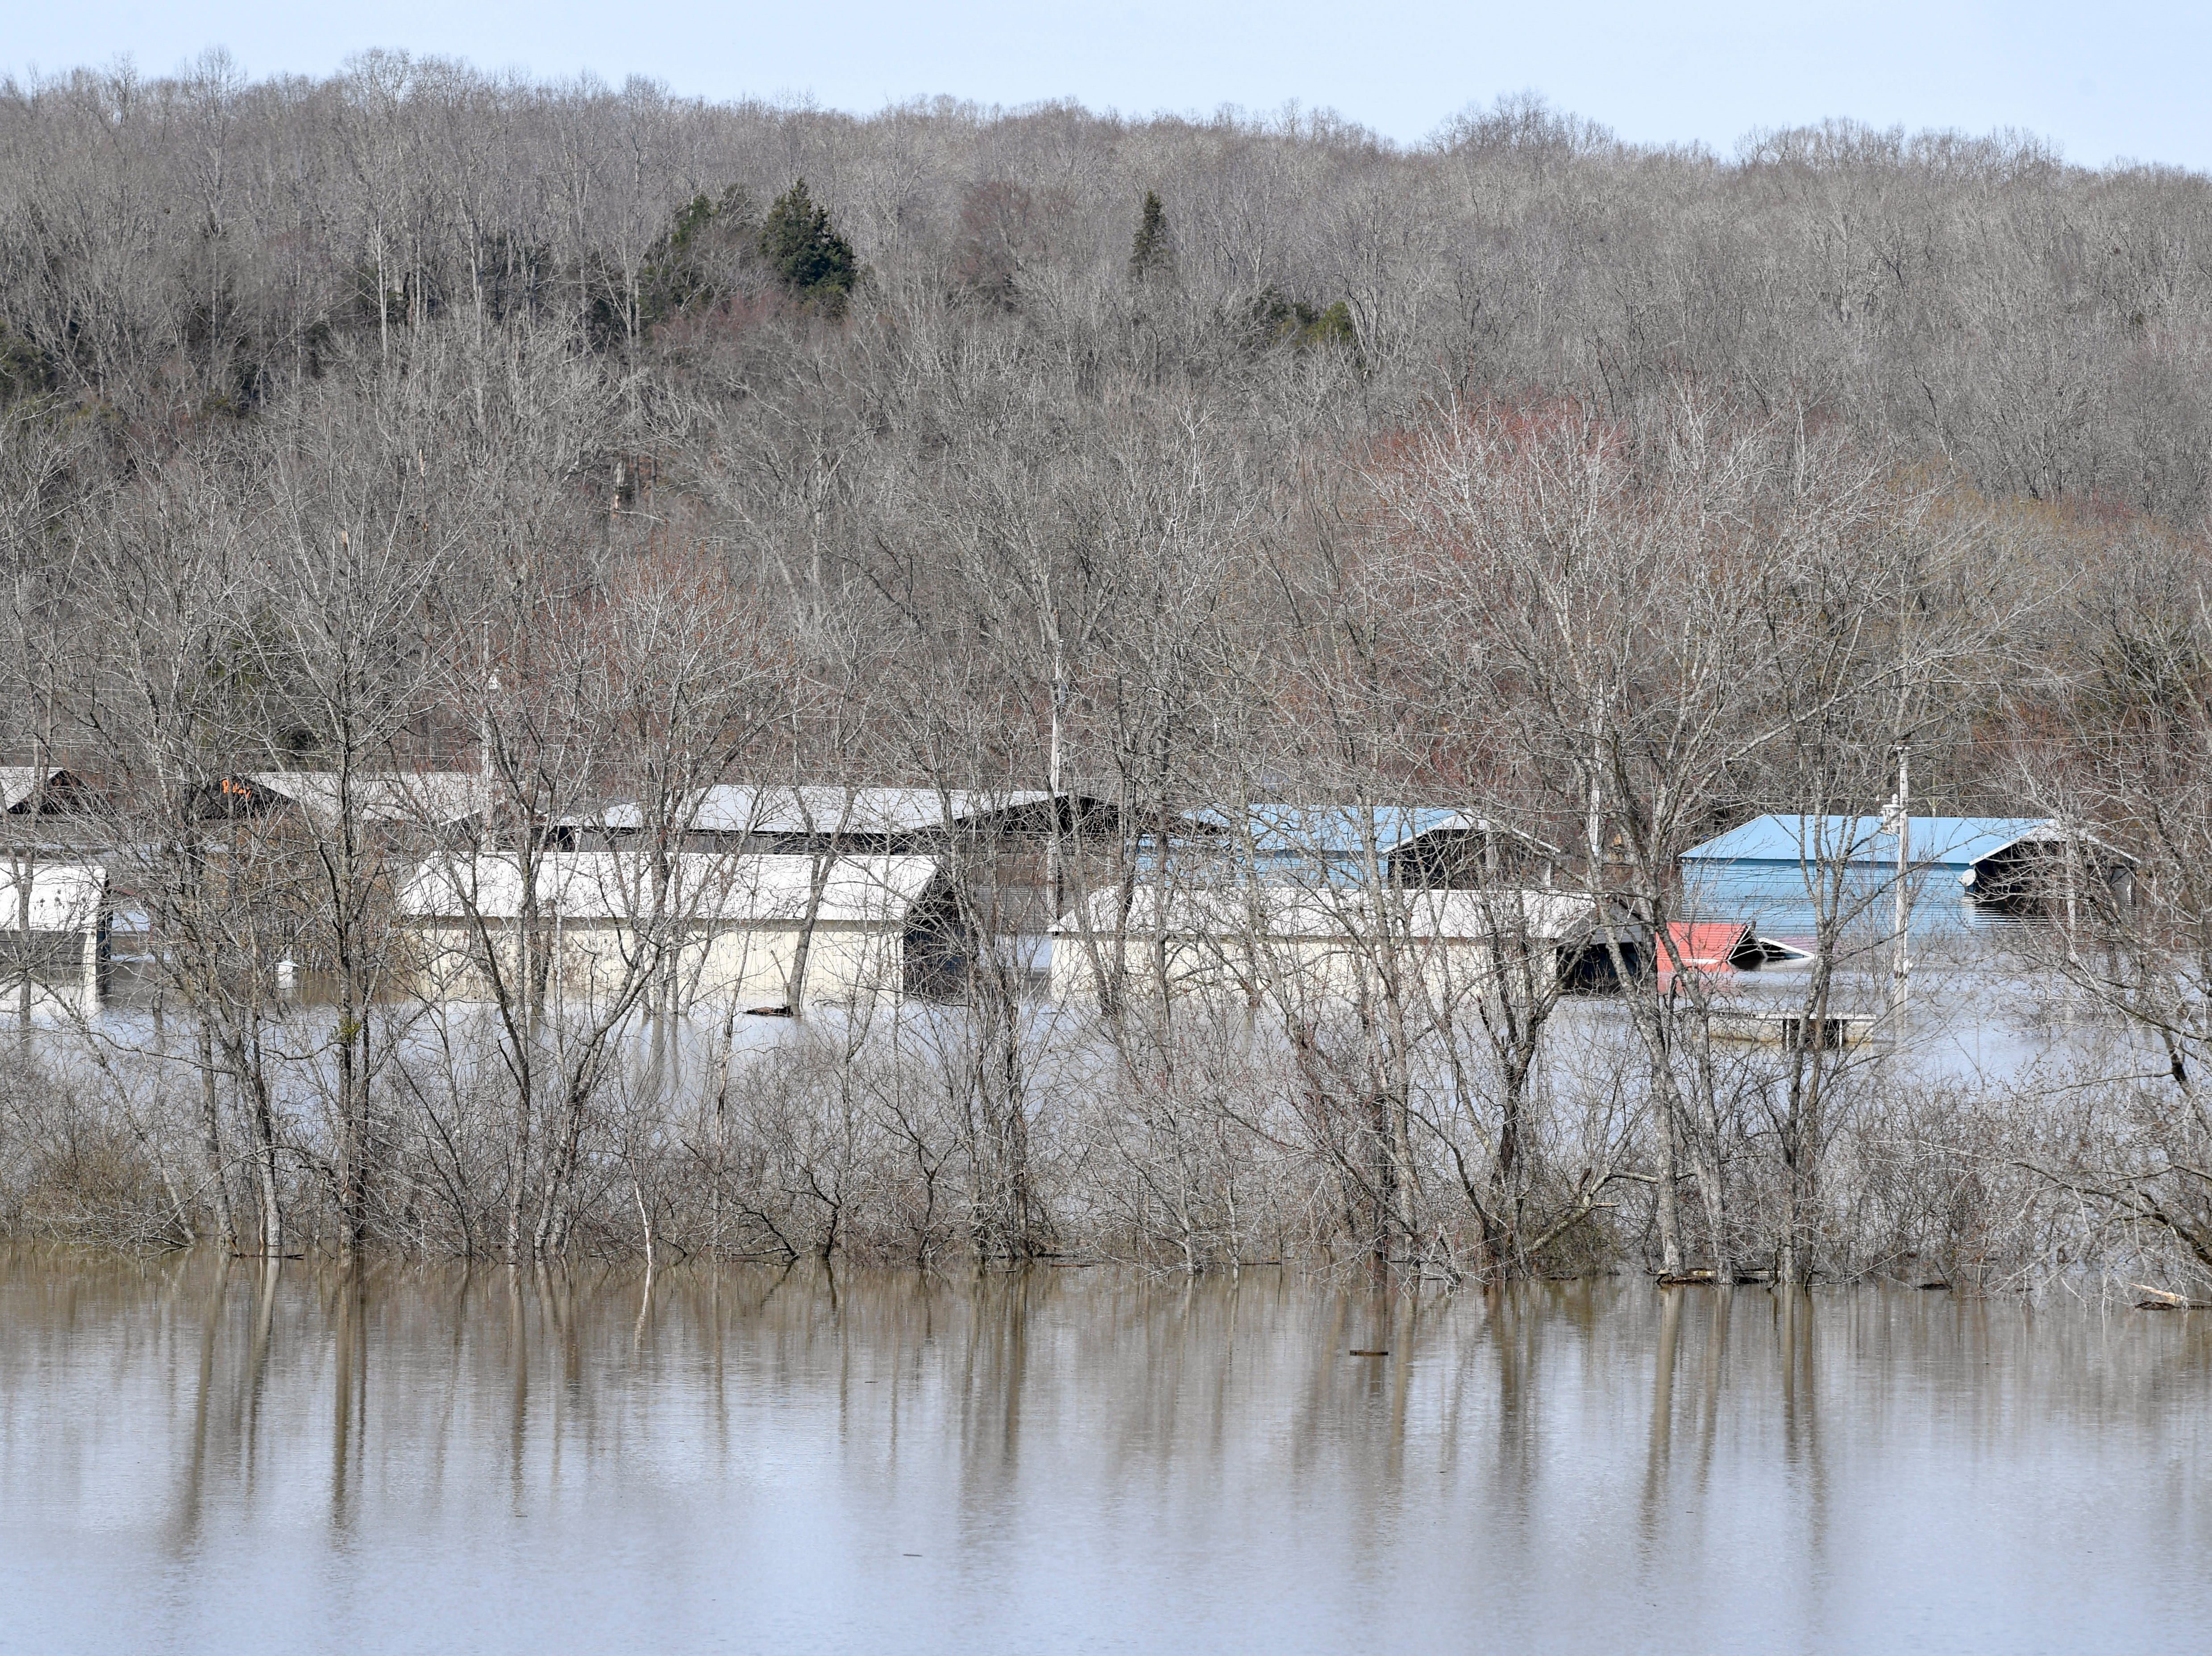 Homes, warehouses, and docks can be seen nearly overcome by flood waters at Lost Creek Boat Ramp, in Decaturville, Tenn., on Monday, Feb. 25, 2019.